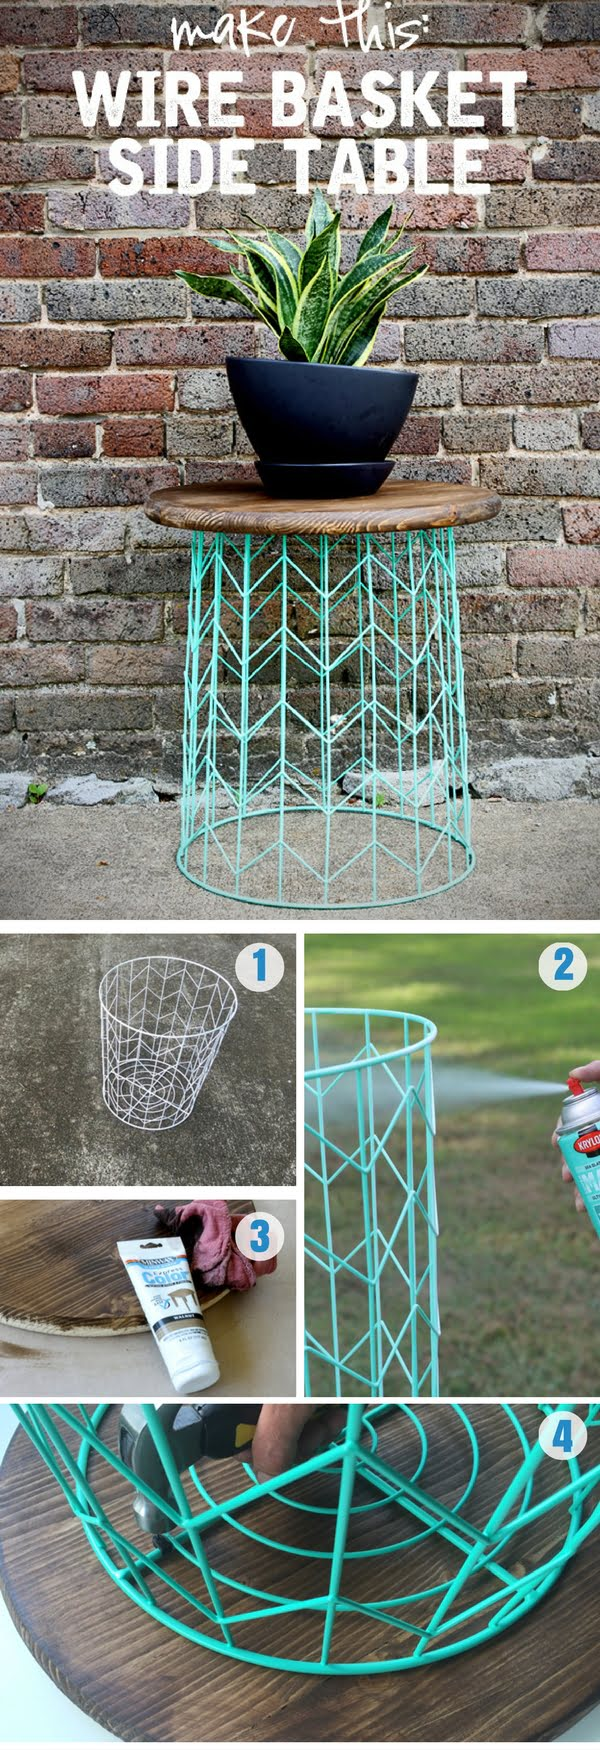 DIY wire basket DIY table